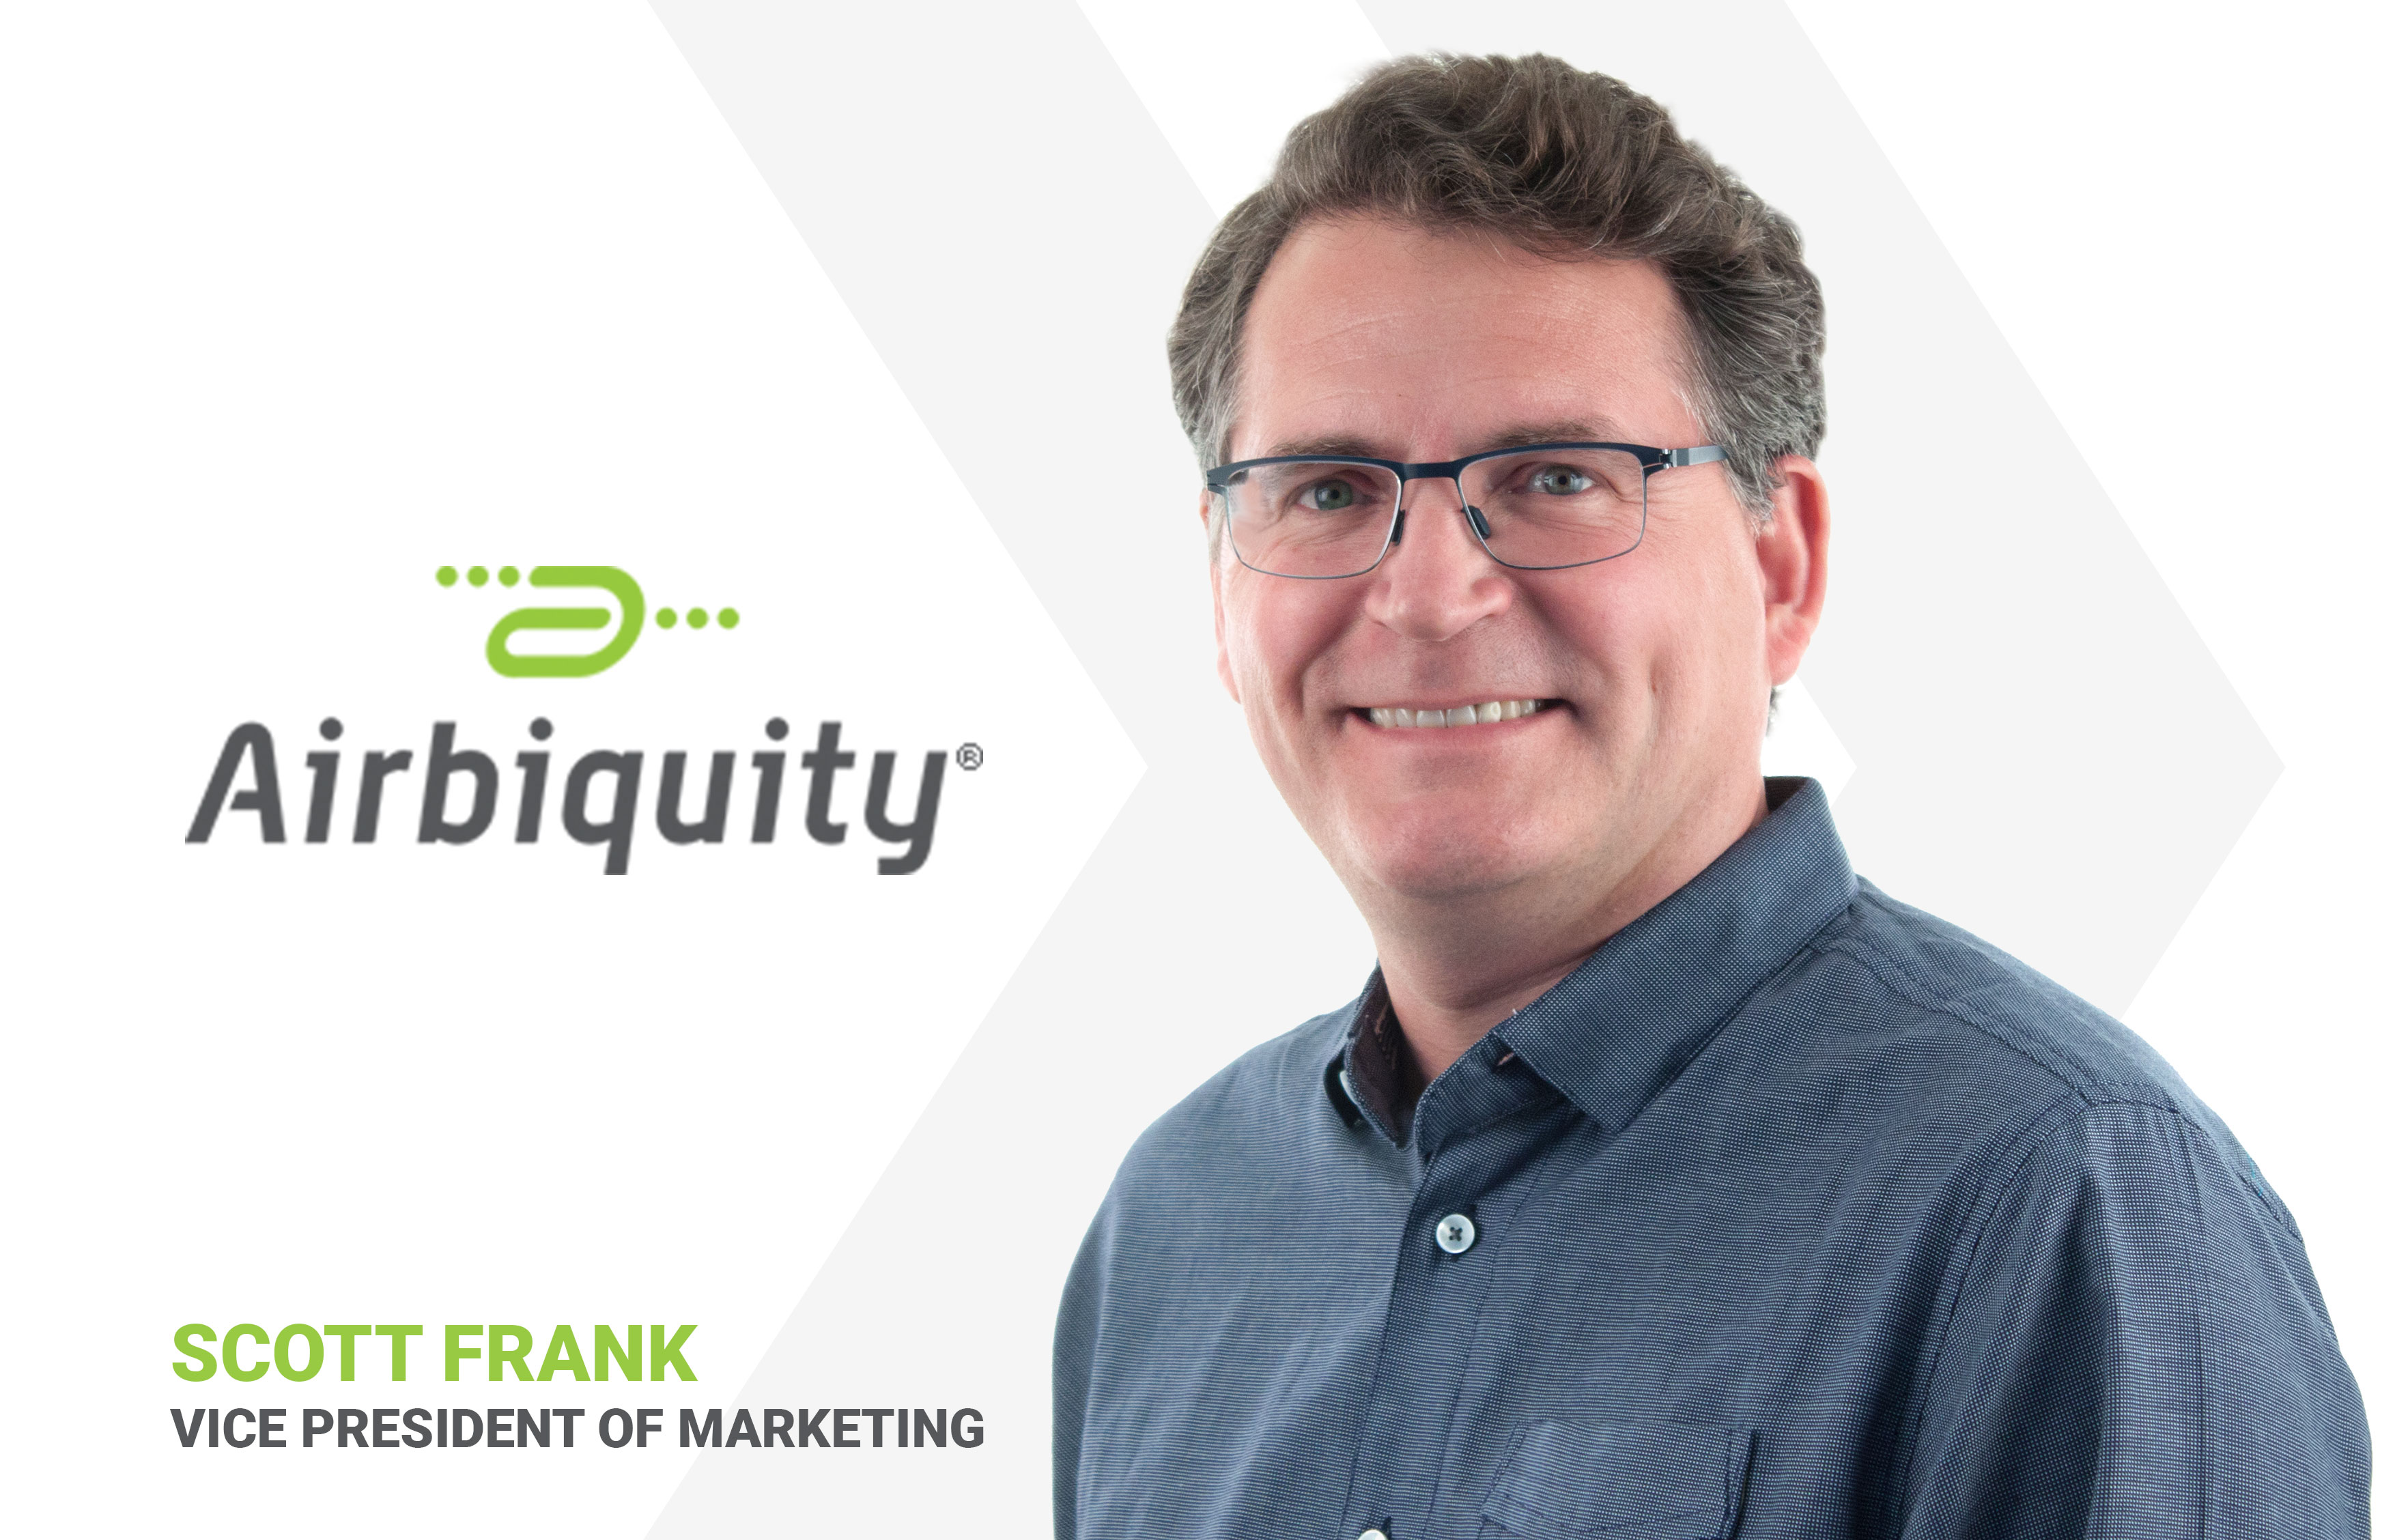 Interview with Scott Frank - VP of Marketing, Airbiquity